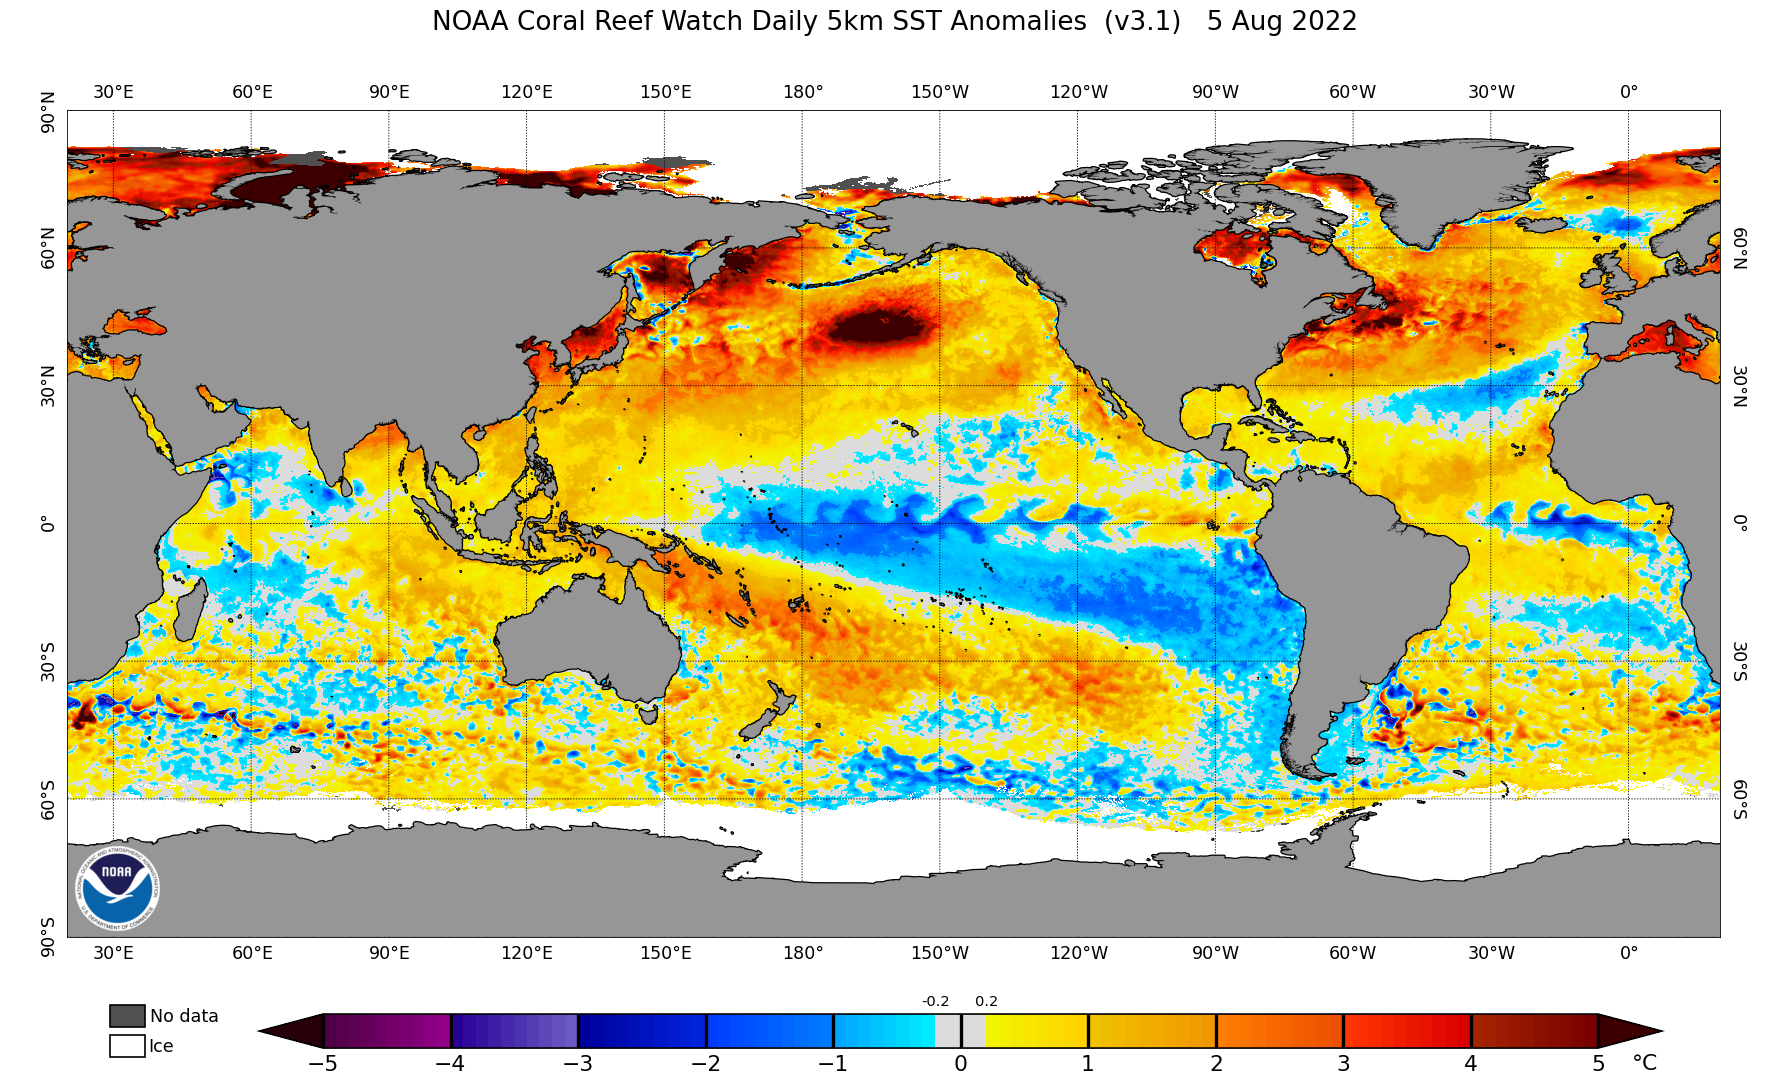 SST Anomaly daily current